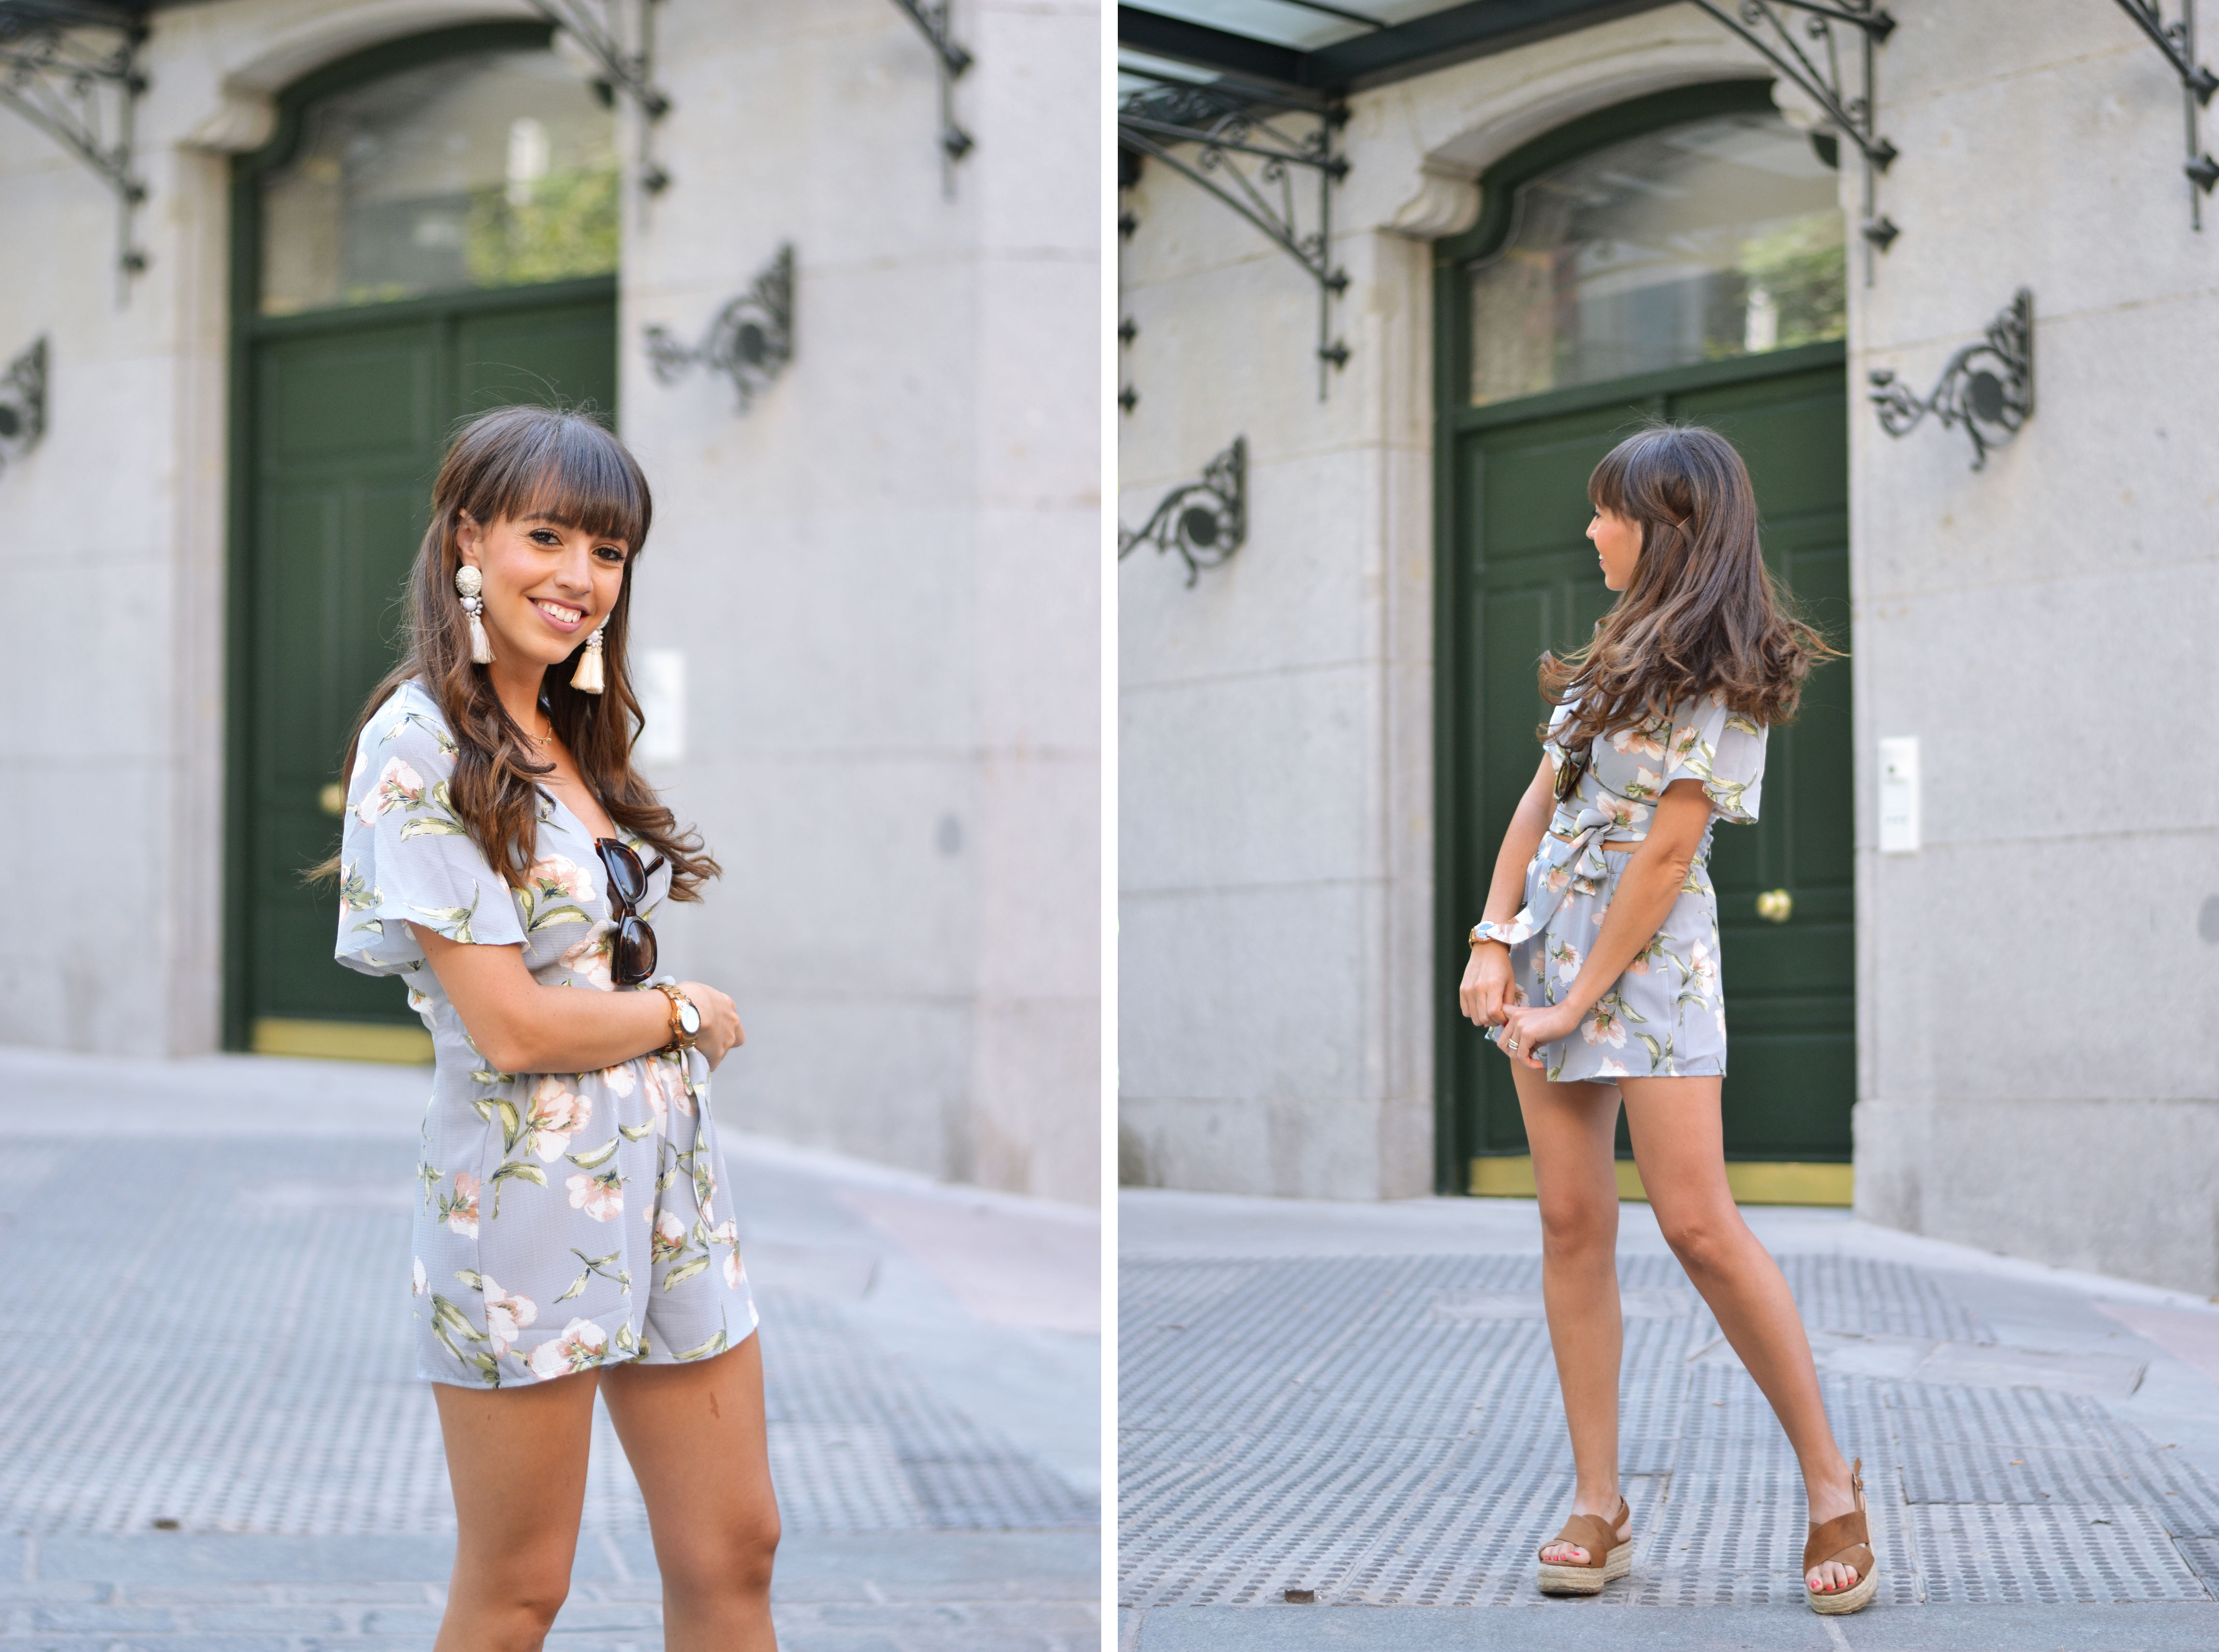 Floral Co-ord, summer outfit, matchy-matchy, floral print, street style, wearwild